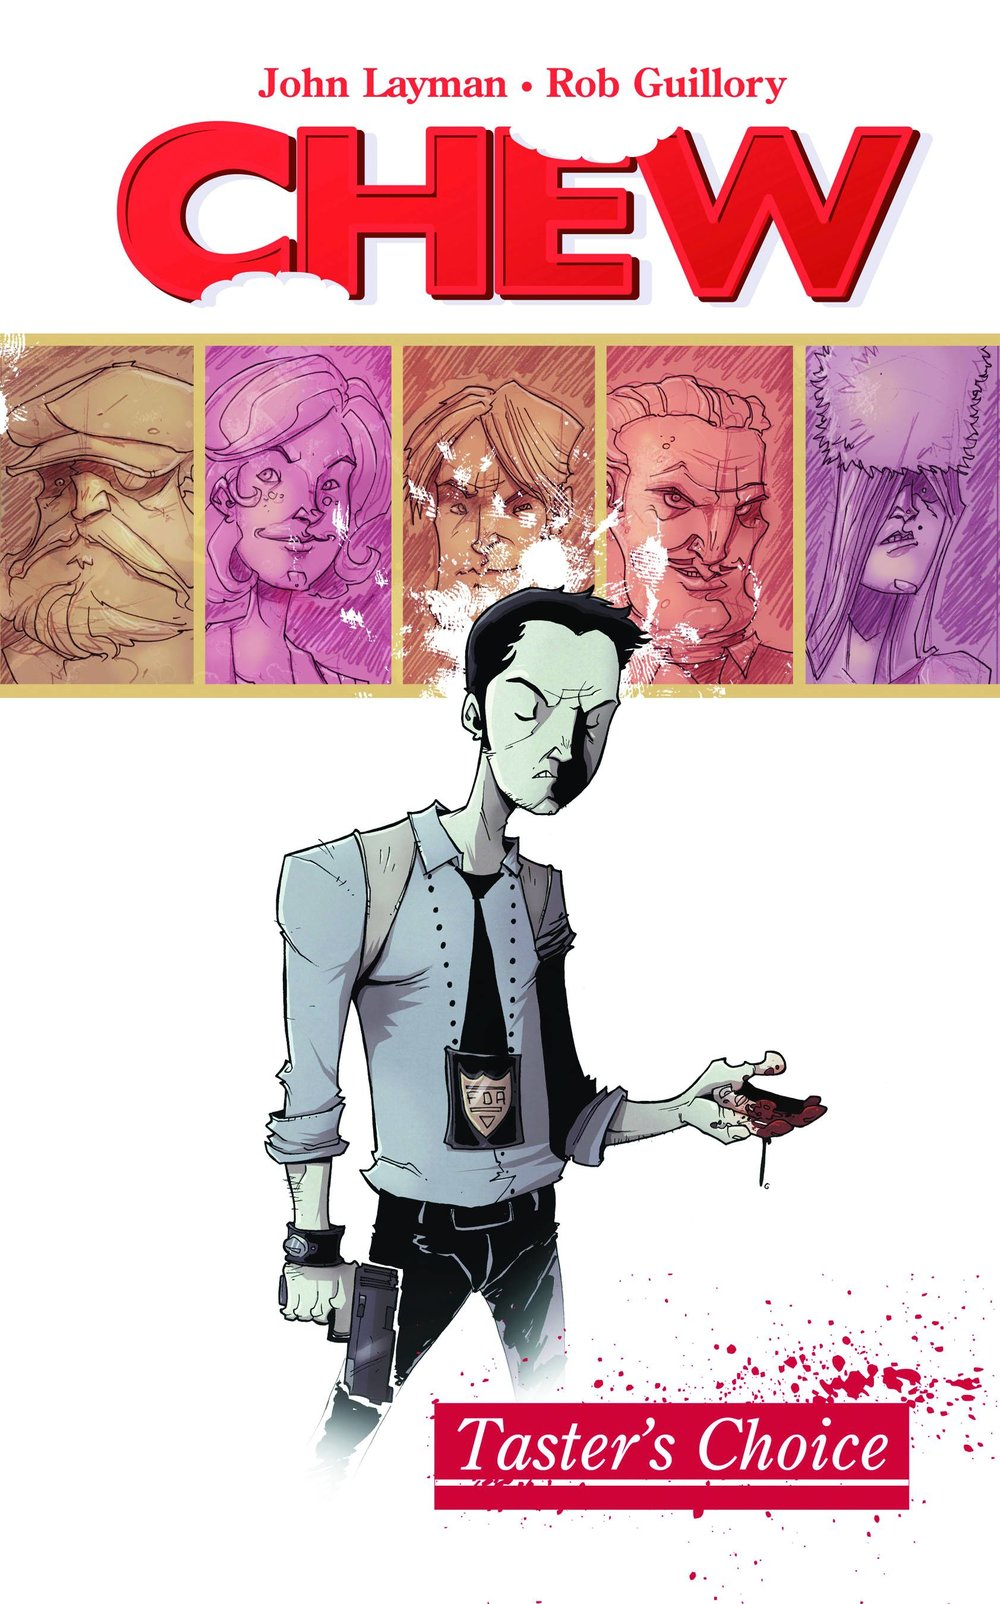 Chew TP Vol 1 - Juan's PickChew, from John Layman (Detective Comics) and Rob Guillory (WWE Comics) is about a detective with a secret. A weird secret. Tony Chu is a Cibopath, which means he gets psychic impressions from anything he eats. He is an amazing detective, as long as he is willing to take a bite of a corpse to learn who killed said corpse and why. He works for the Special Crimes Division of the FDA, the most powerful law enforcement agency in the world. If you consider yourself a foodie who likes comics with vampires, cyborgs, enhanced animals, outer space shenanigans, and killer warrior chickens, then check out Chew!